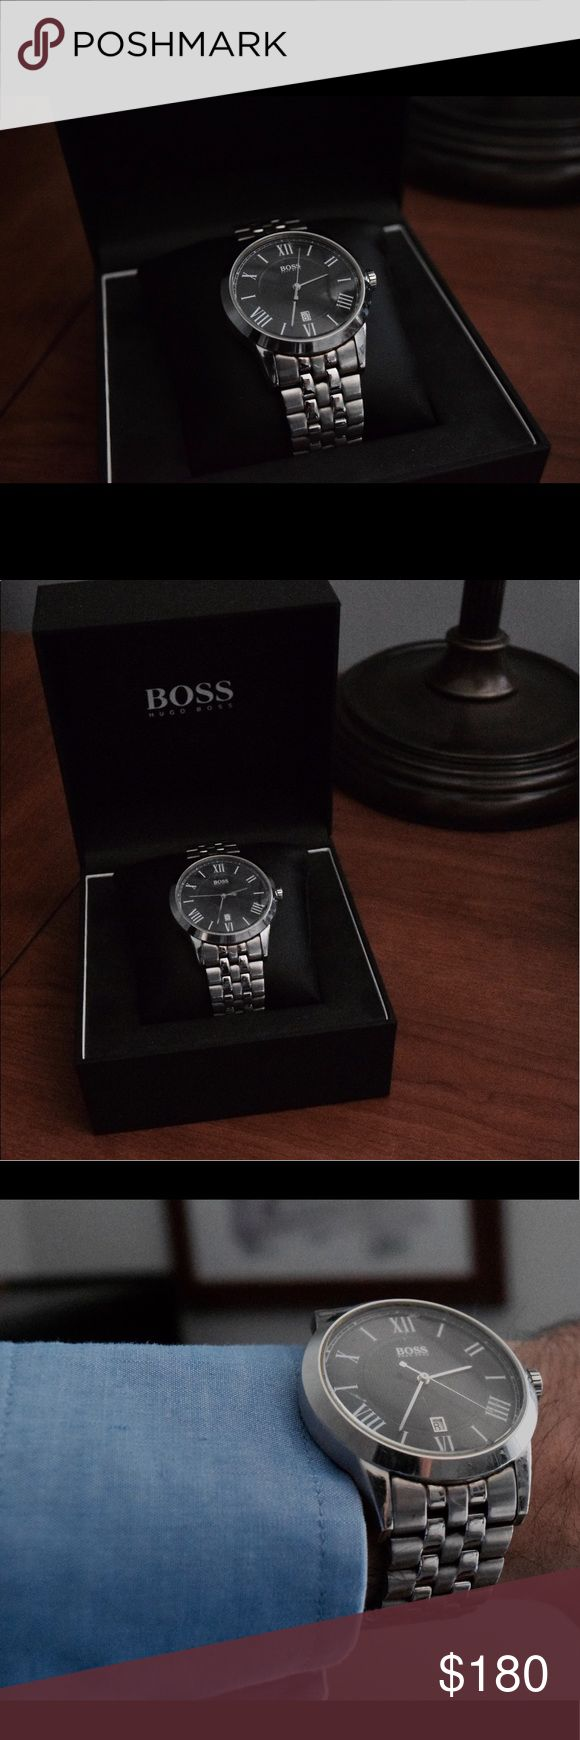 HUGO BOSS STAINLESS STEEL WATCH MEN 💼 Superb watch for superb businessmen. A gentleman knows how to invest in himself!                                         -Stainless steel case -Stainless steel bracelet  -Black dial -Quartz movement -Water resistant up to 5 ATM Hugo Boss Accessories Watches